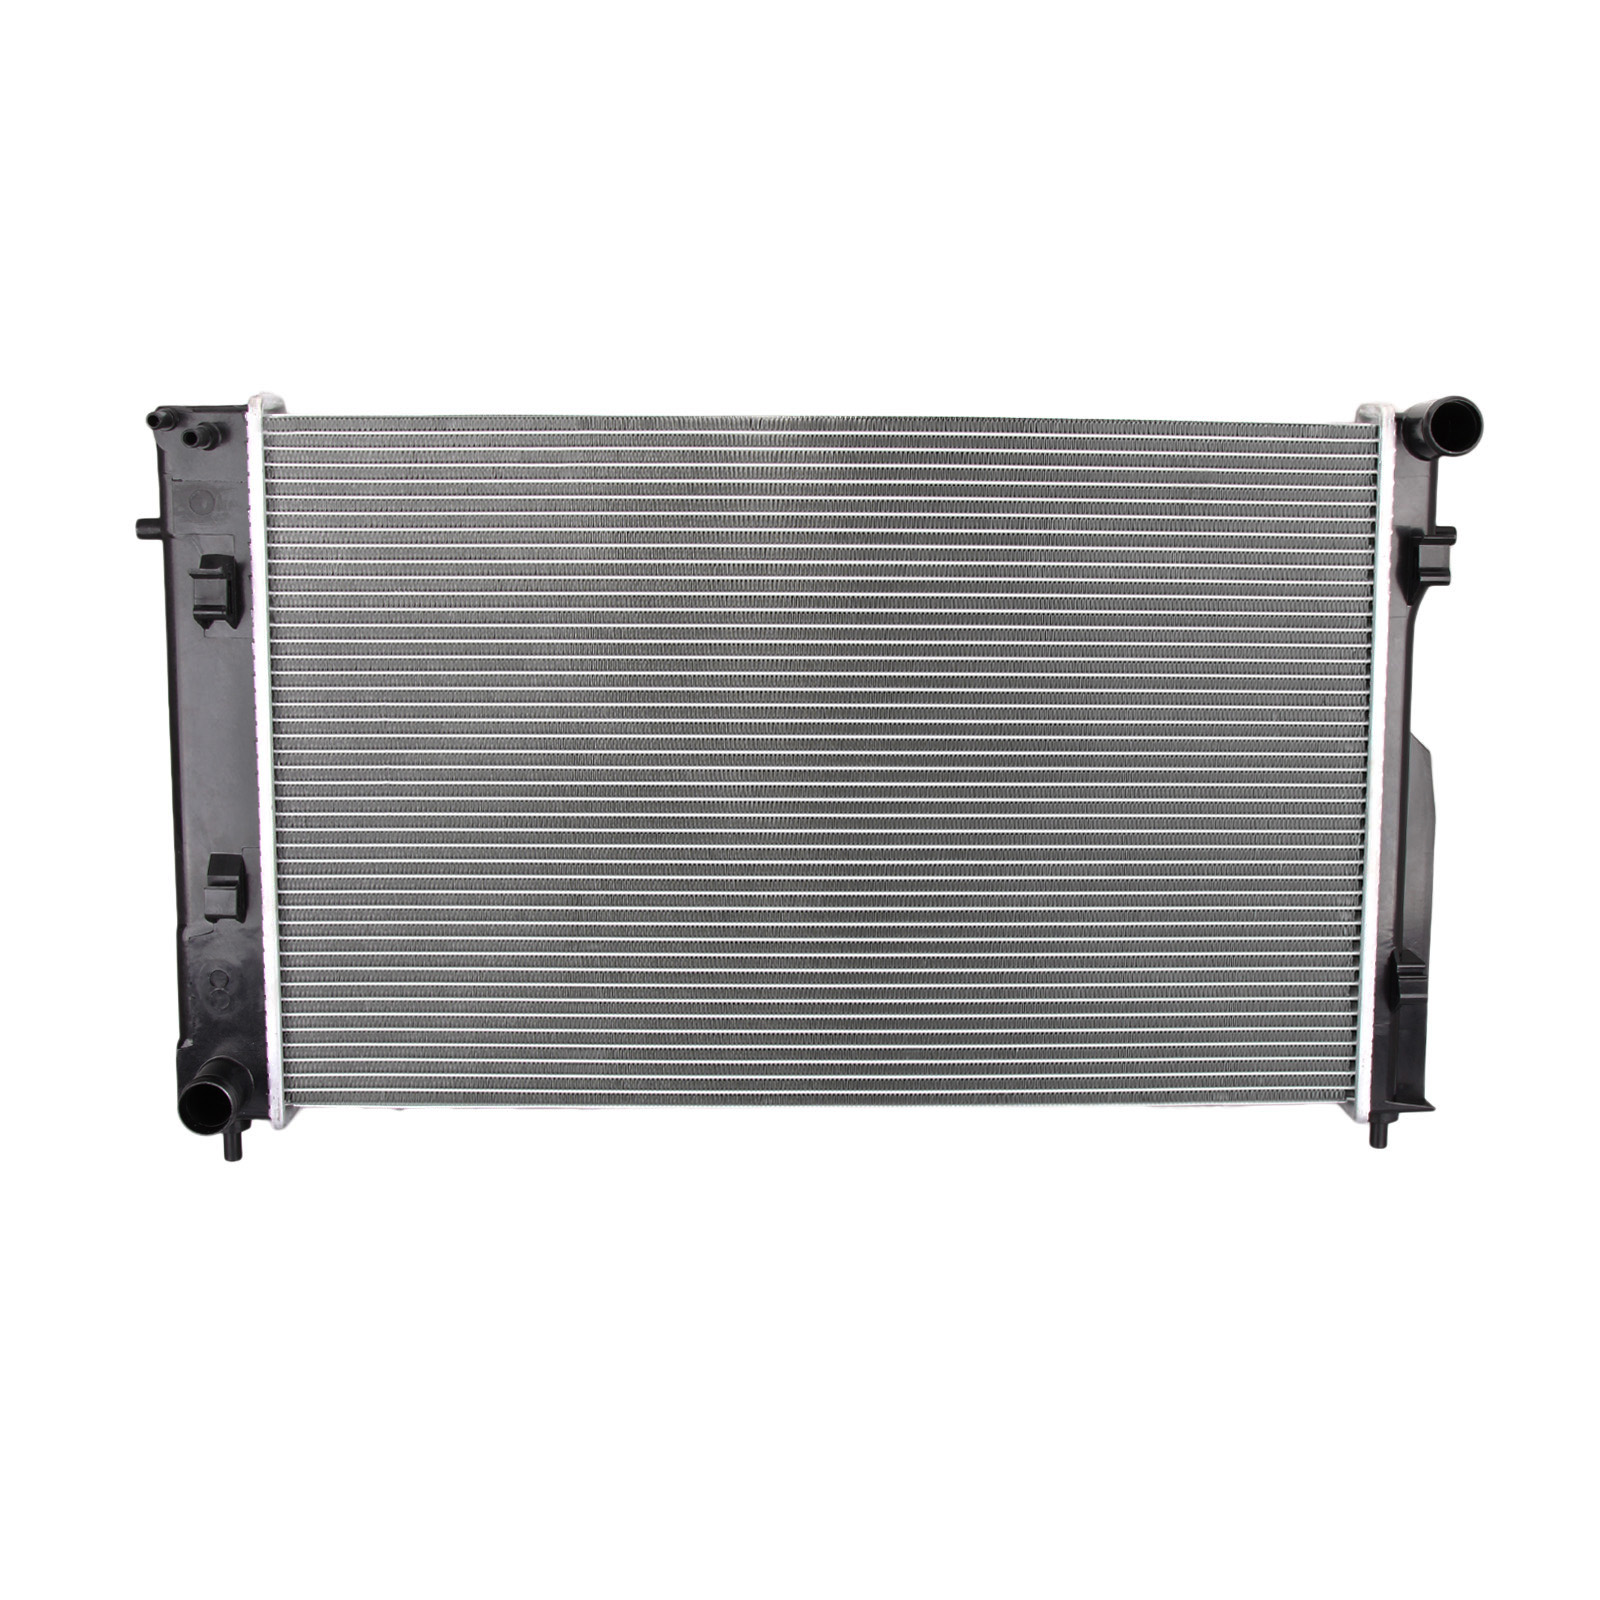 Dromedary Holden Radiator Commodore VY Statesman WK Fit 5.7L V8 Engine Manual 32mm Thick HOLDEN RADIATOR image5